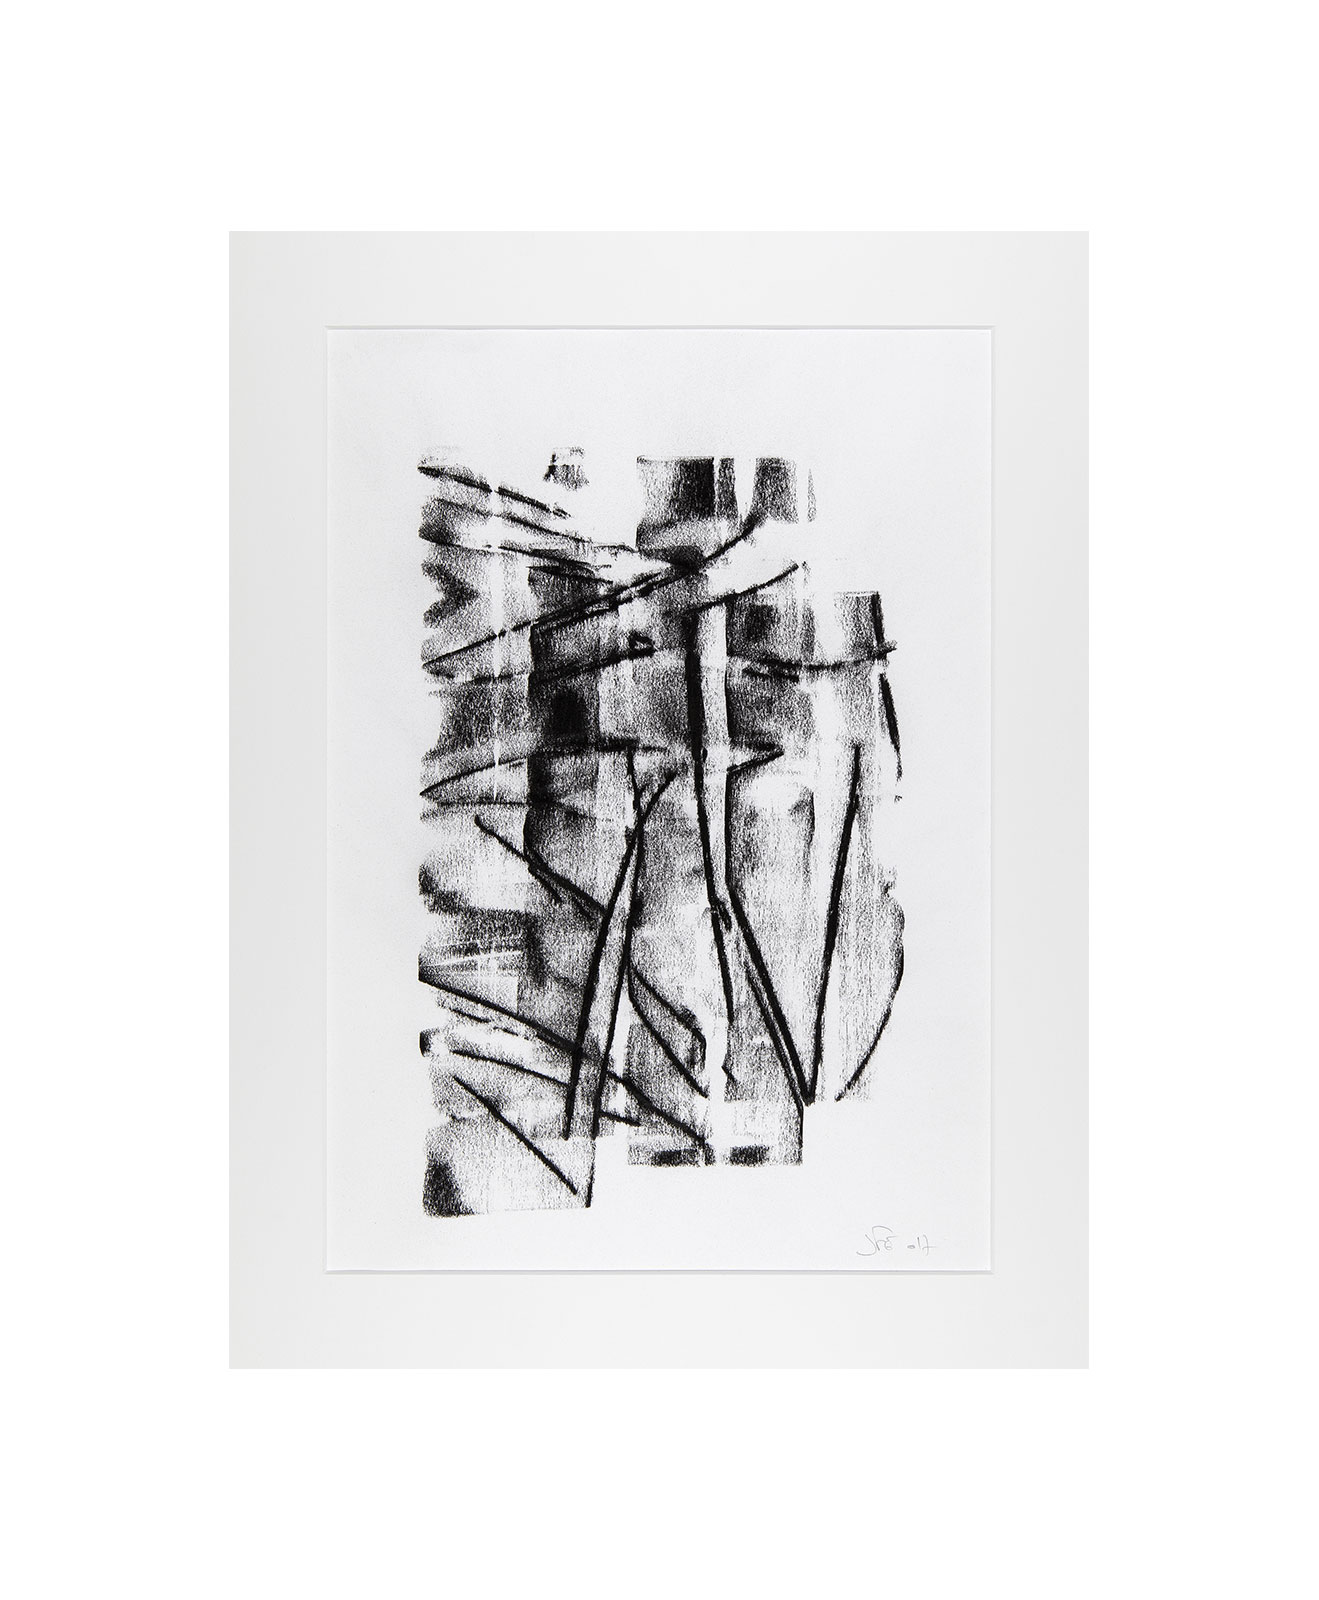 Cha 1.9, Charcoal on paper, black and white artwork, drawing, jf escande, contemporary art